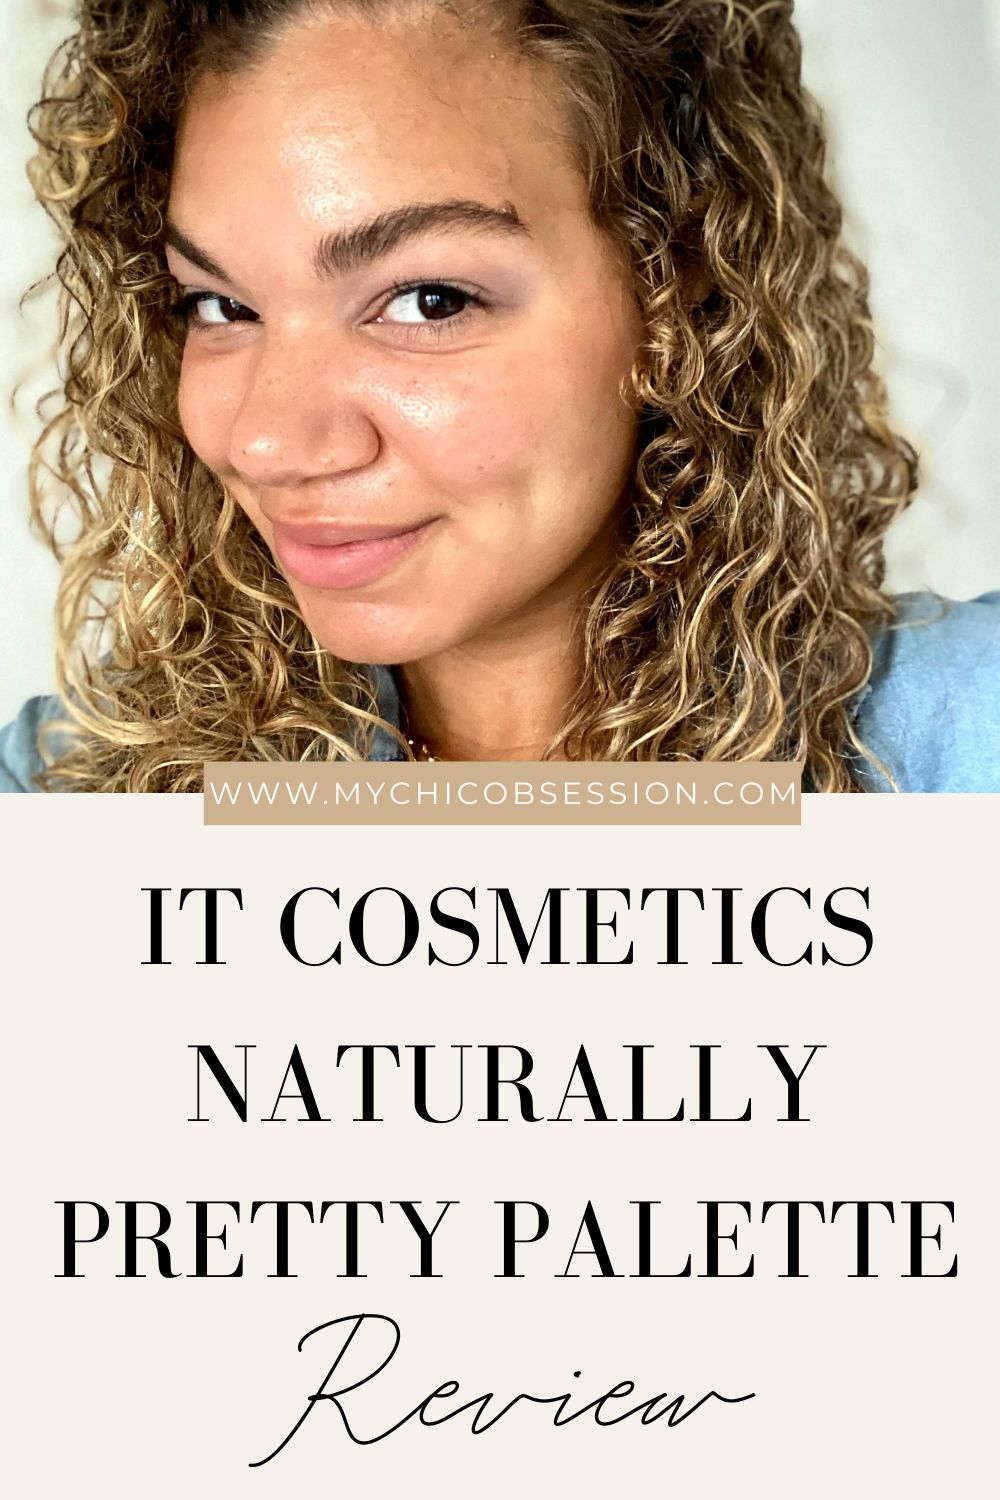 IT Cosmetics Naturally Pretty Palette Review